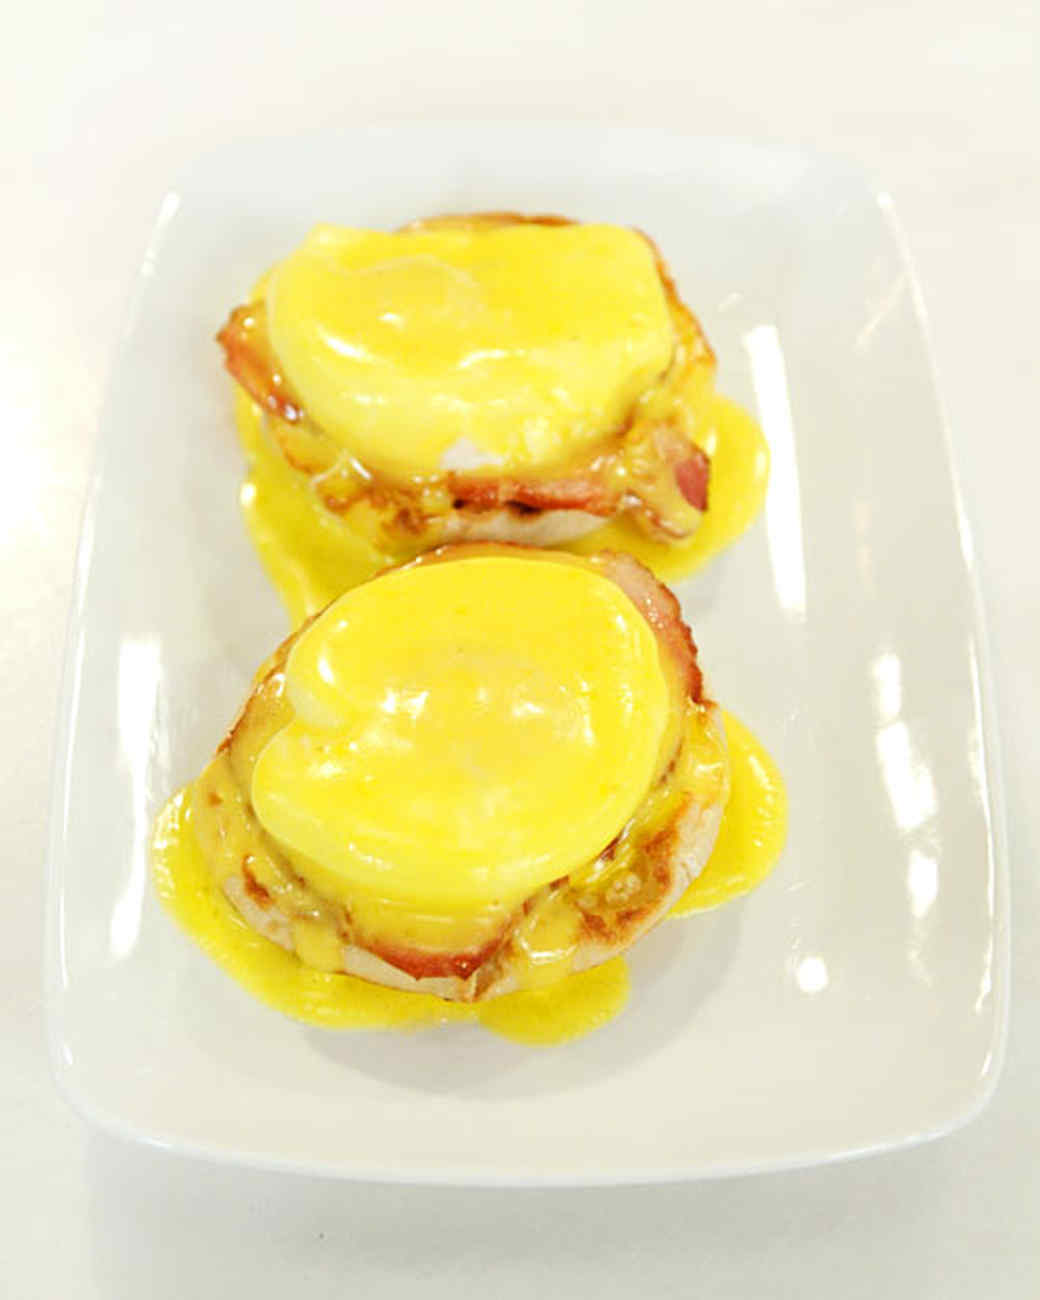 Michel Roux's Hollandaise Sauce